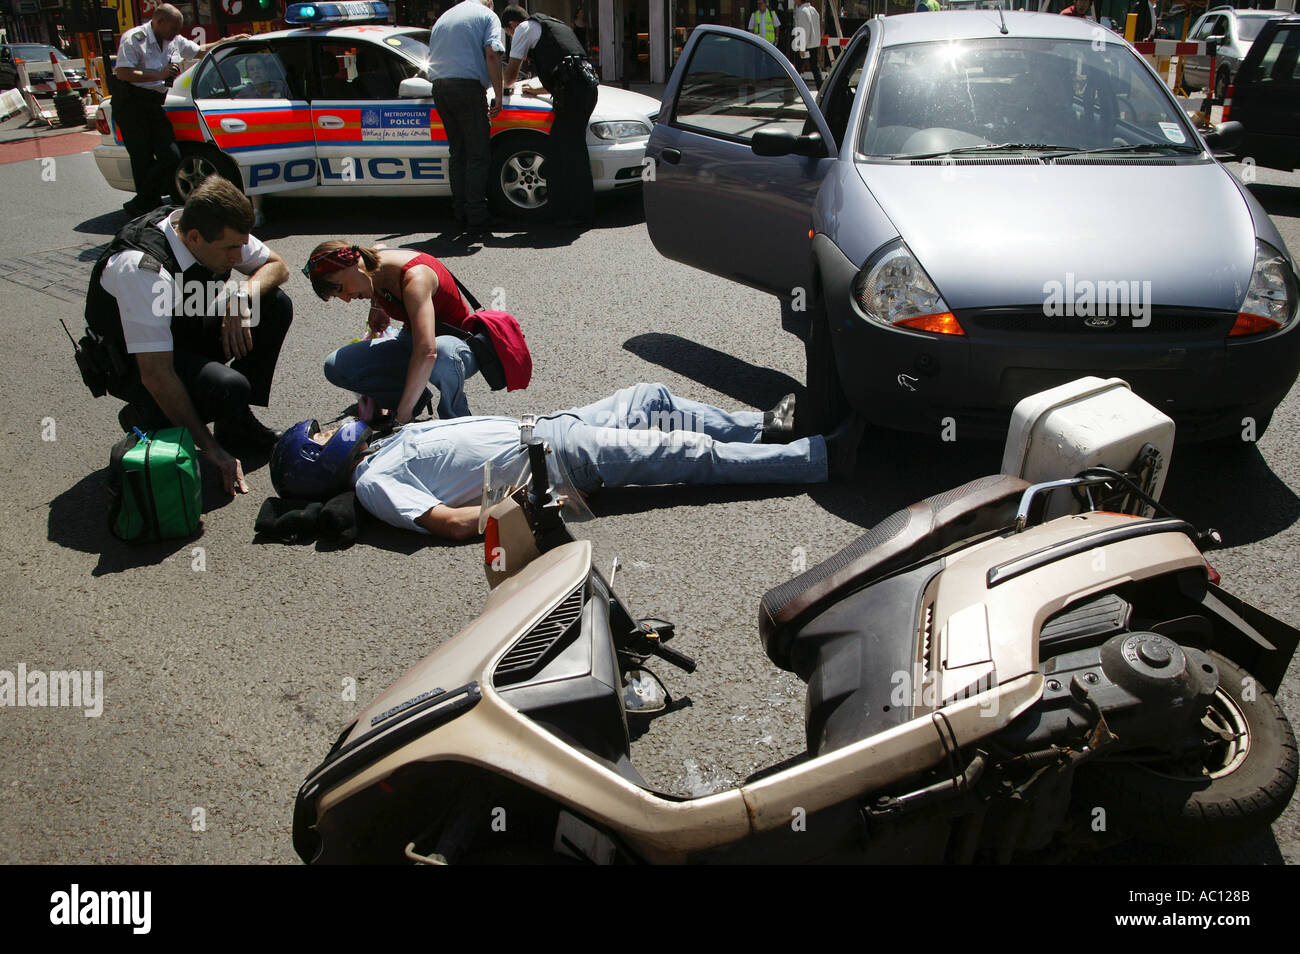 UK London motorcycle accident Injured motorcyclist Picture Stock ...